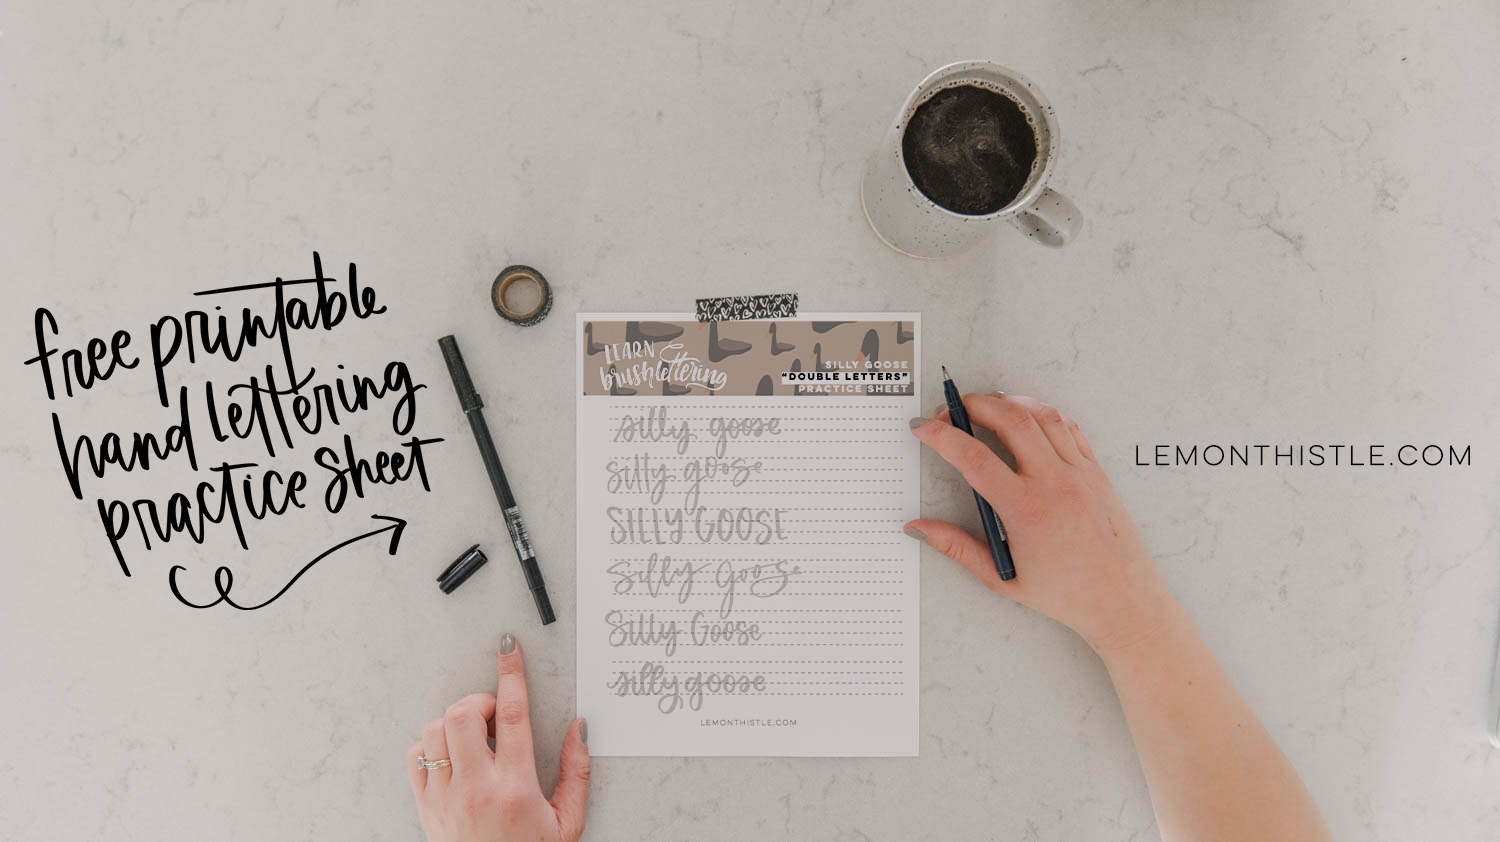 Free Printable Hand Lettering Practice Sheet